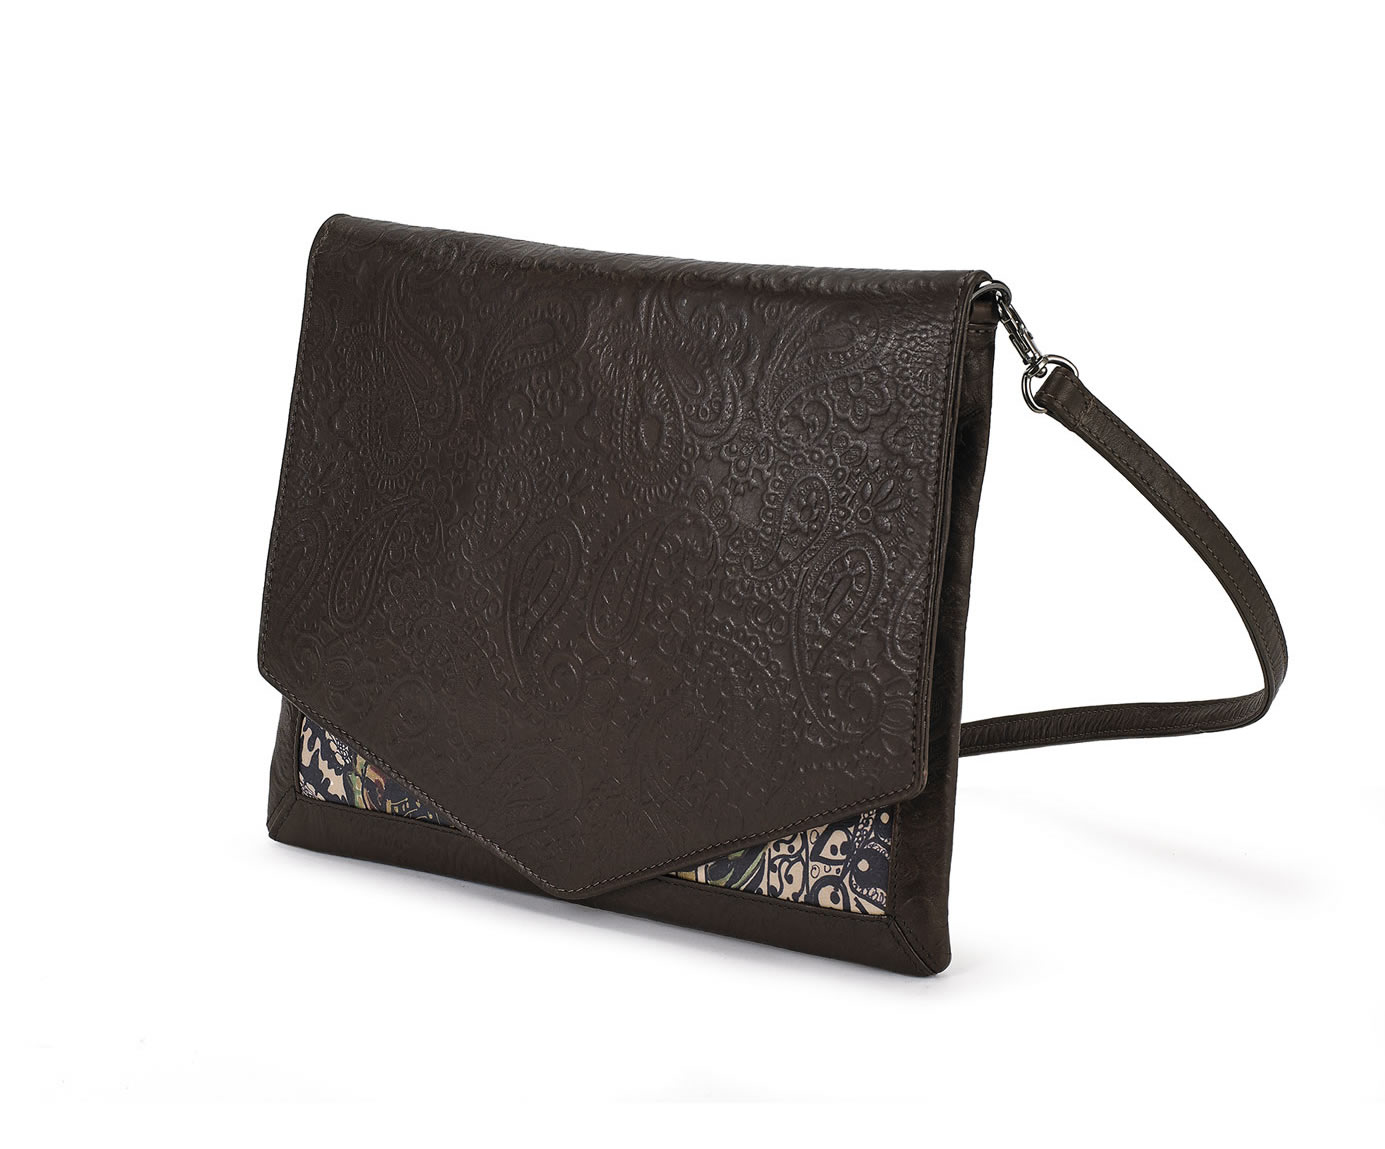 CROSSBODY BROWN EMBOSSED SERENITY 1